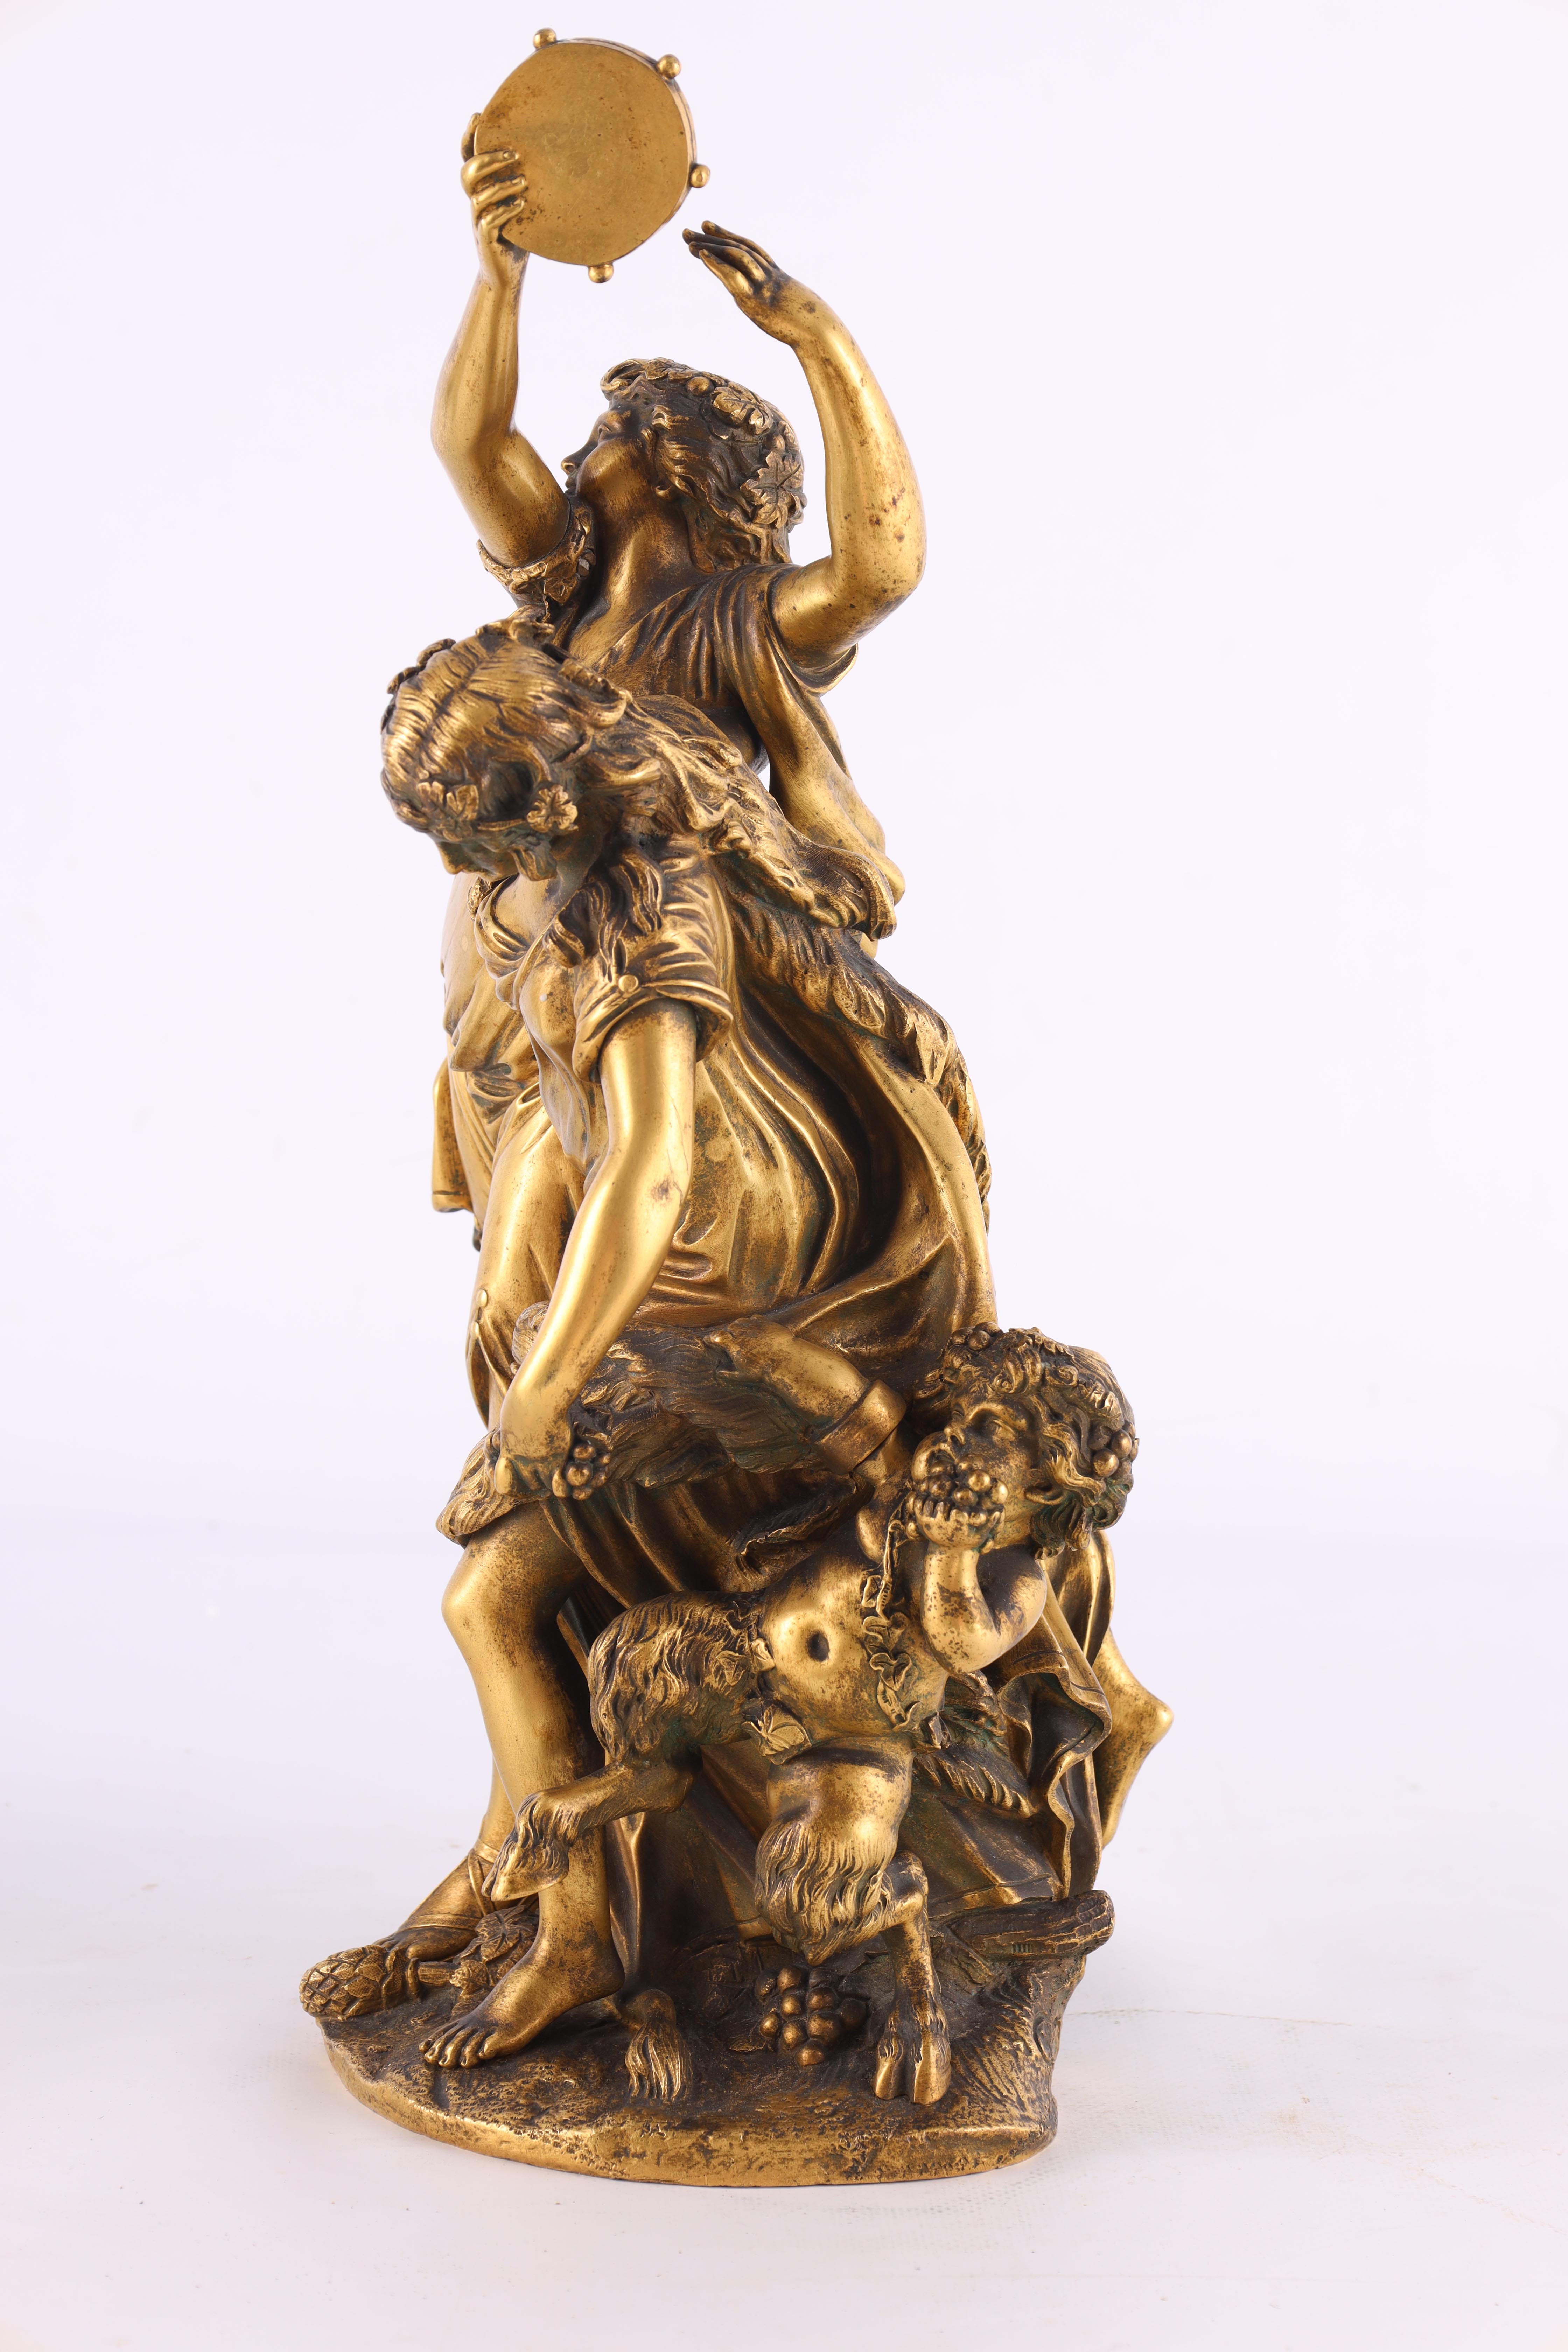 AFTER MICHAEL CLAUDE CLODION A LATE 19TH CENTURY FRENCH GILT BRONZE SCULPTURE titled 'Bacchanalia' - Image 3 of 10